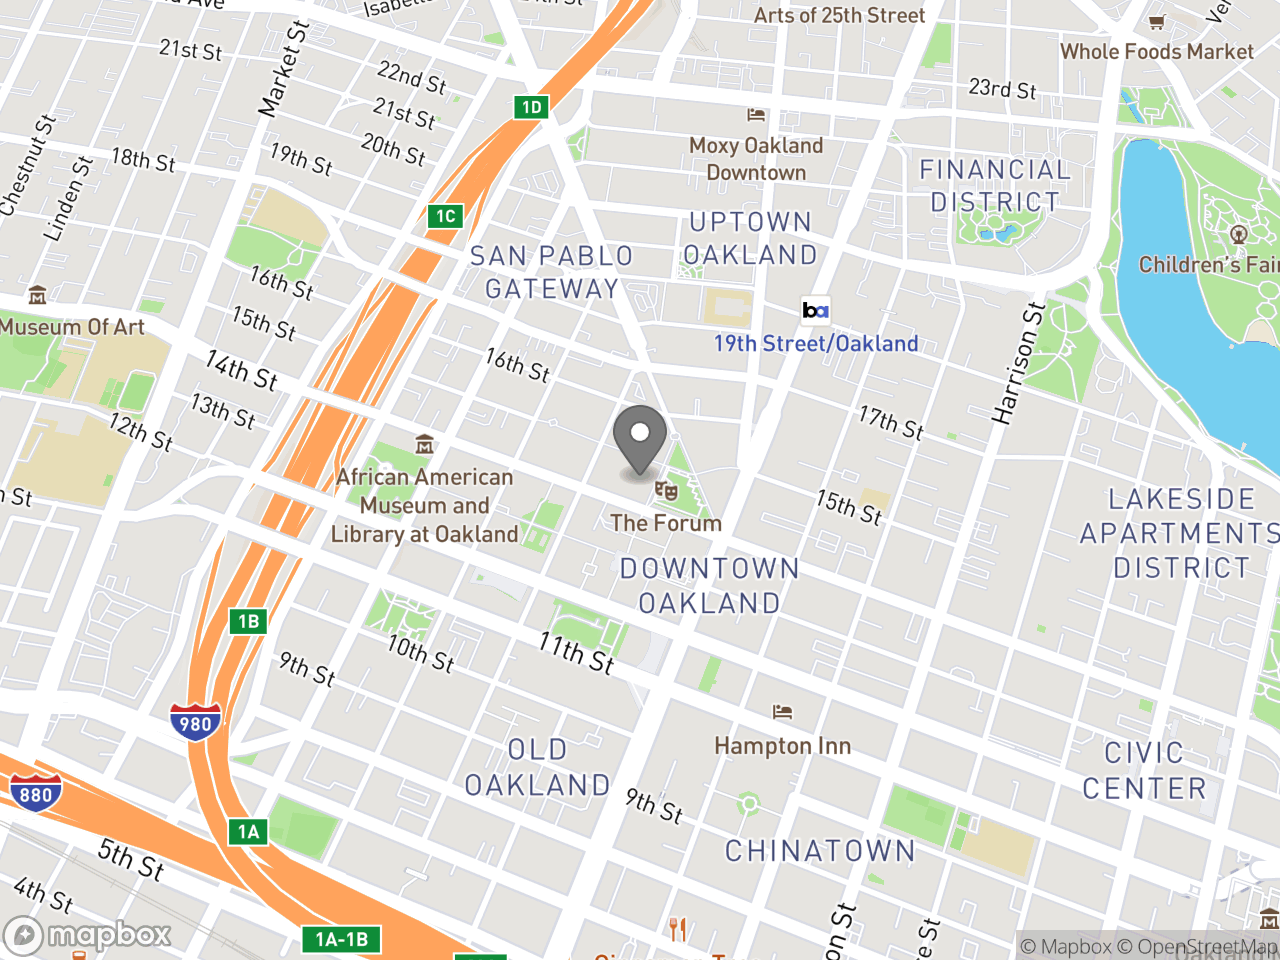 Map location for May 4, 2016 Planning Commission Meeting, located at 1 Frank H Ogawa Plaza   in Oakland, CA 94612